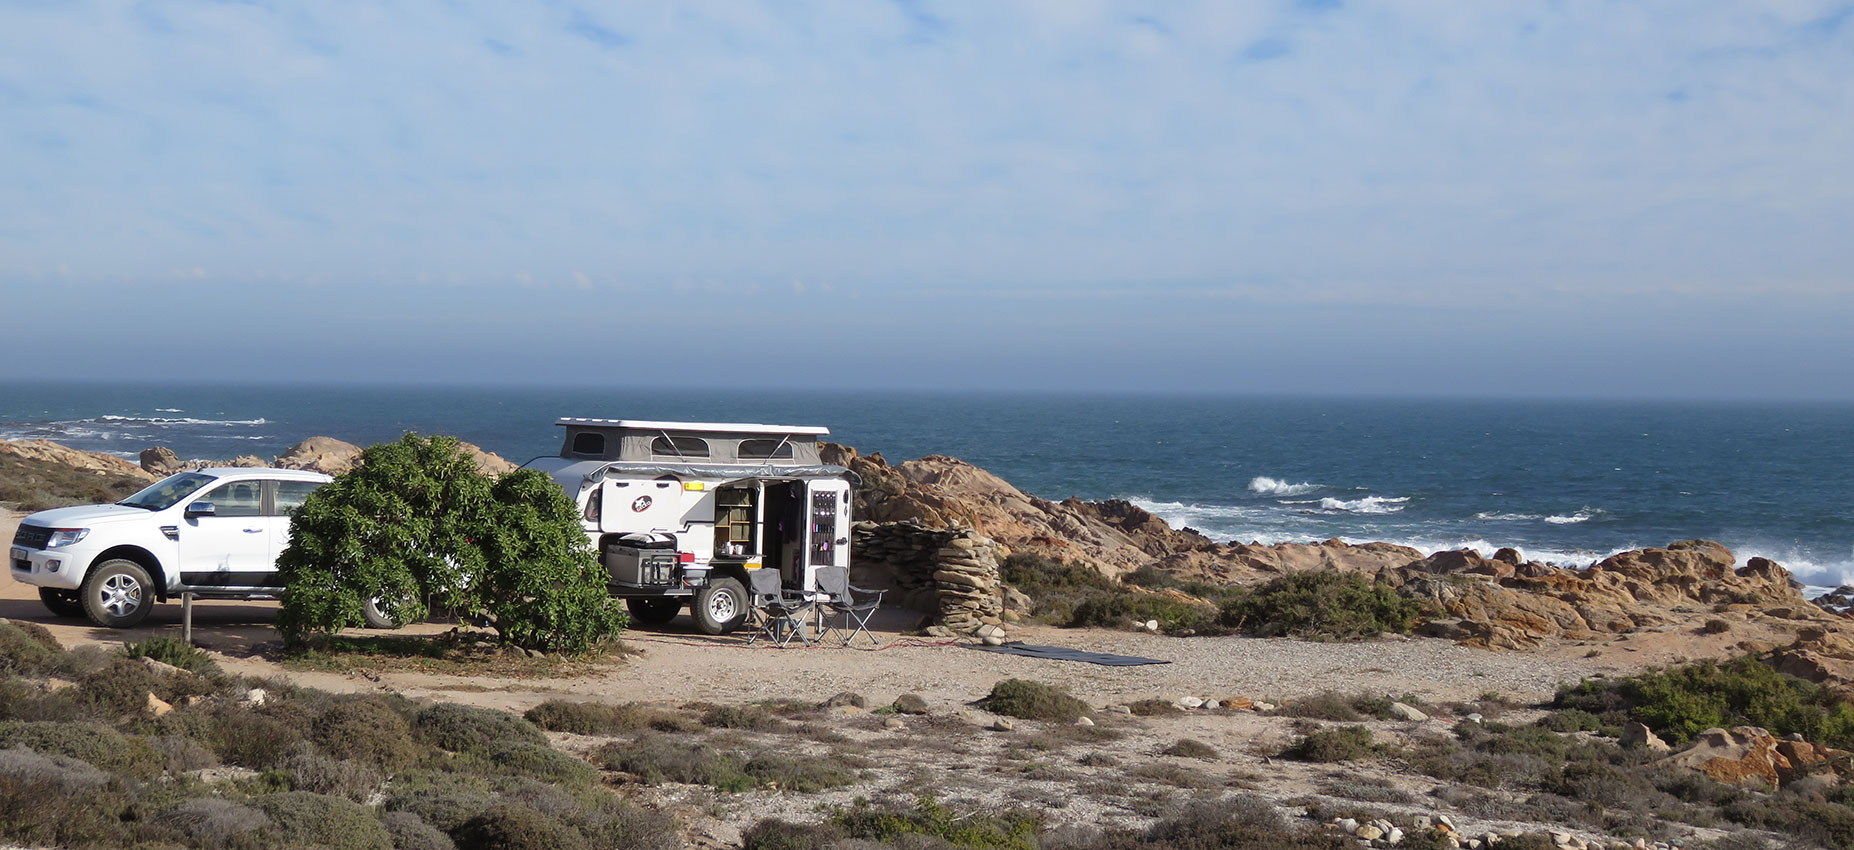 Offroad Caravan at the Beach